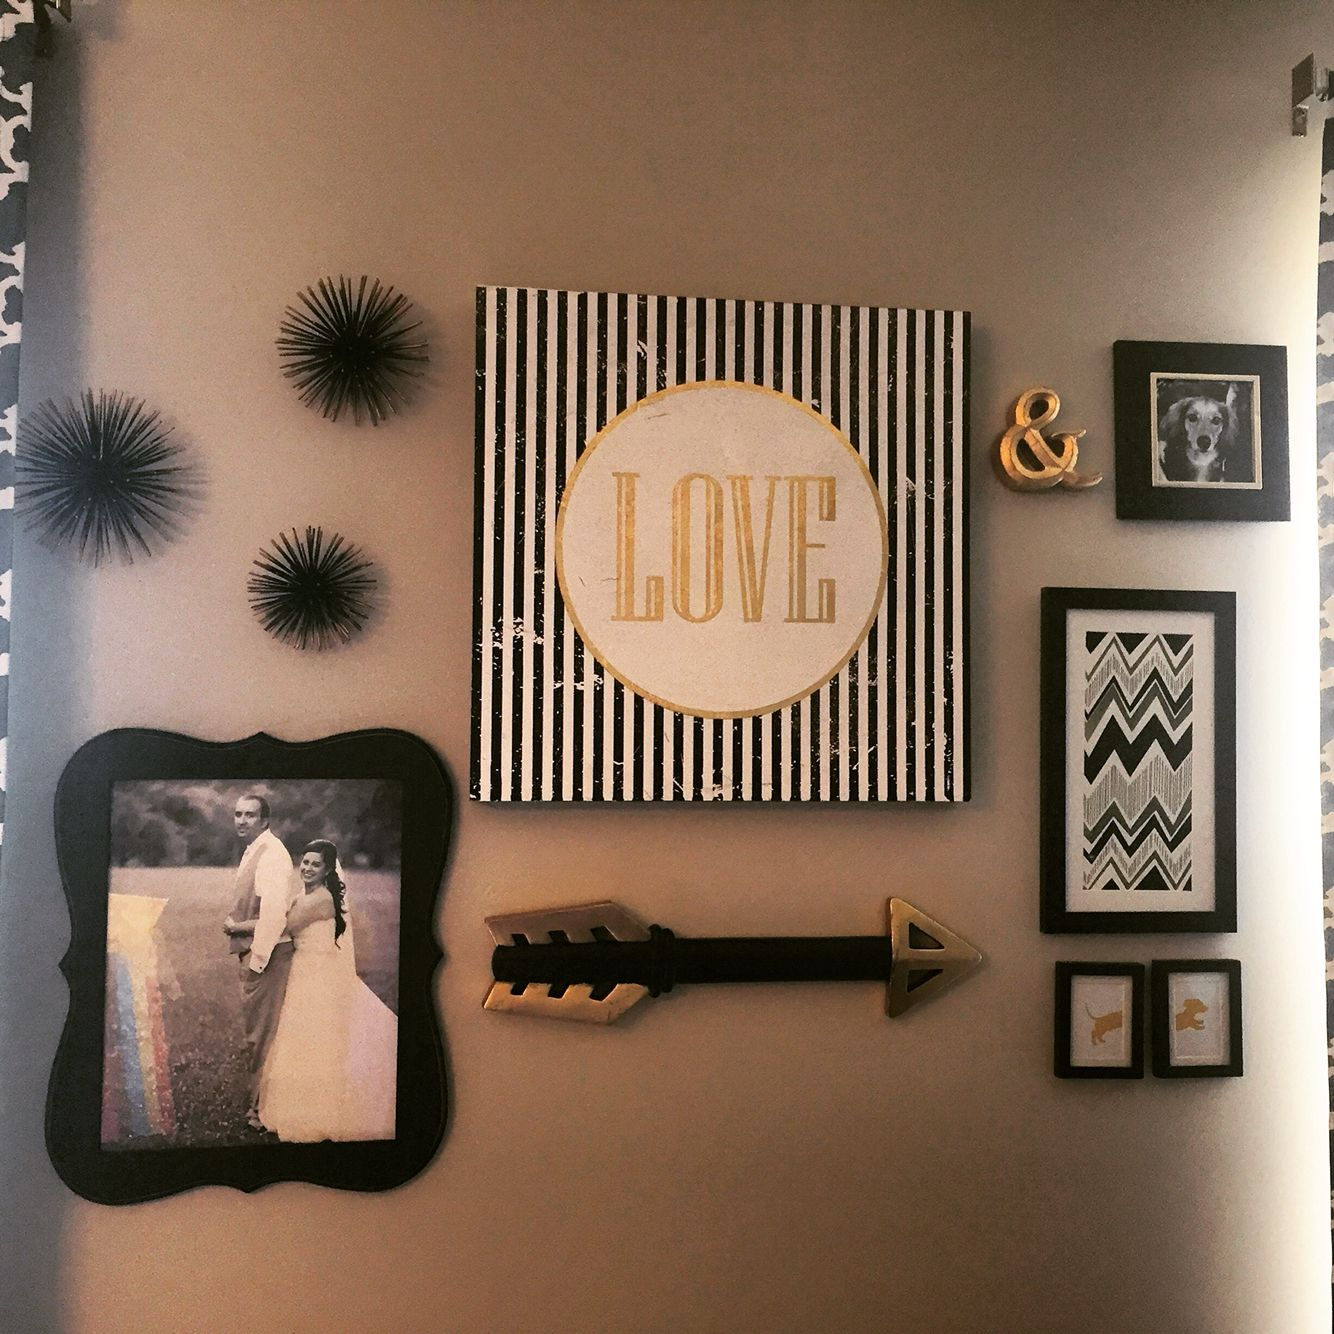 Target Home Decor Ideas Part - 30: Gallery Wall - Nearly Everything Is From Hobby Lobby Except The Sea Urchins  From Target!